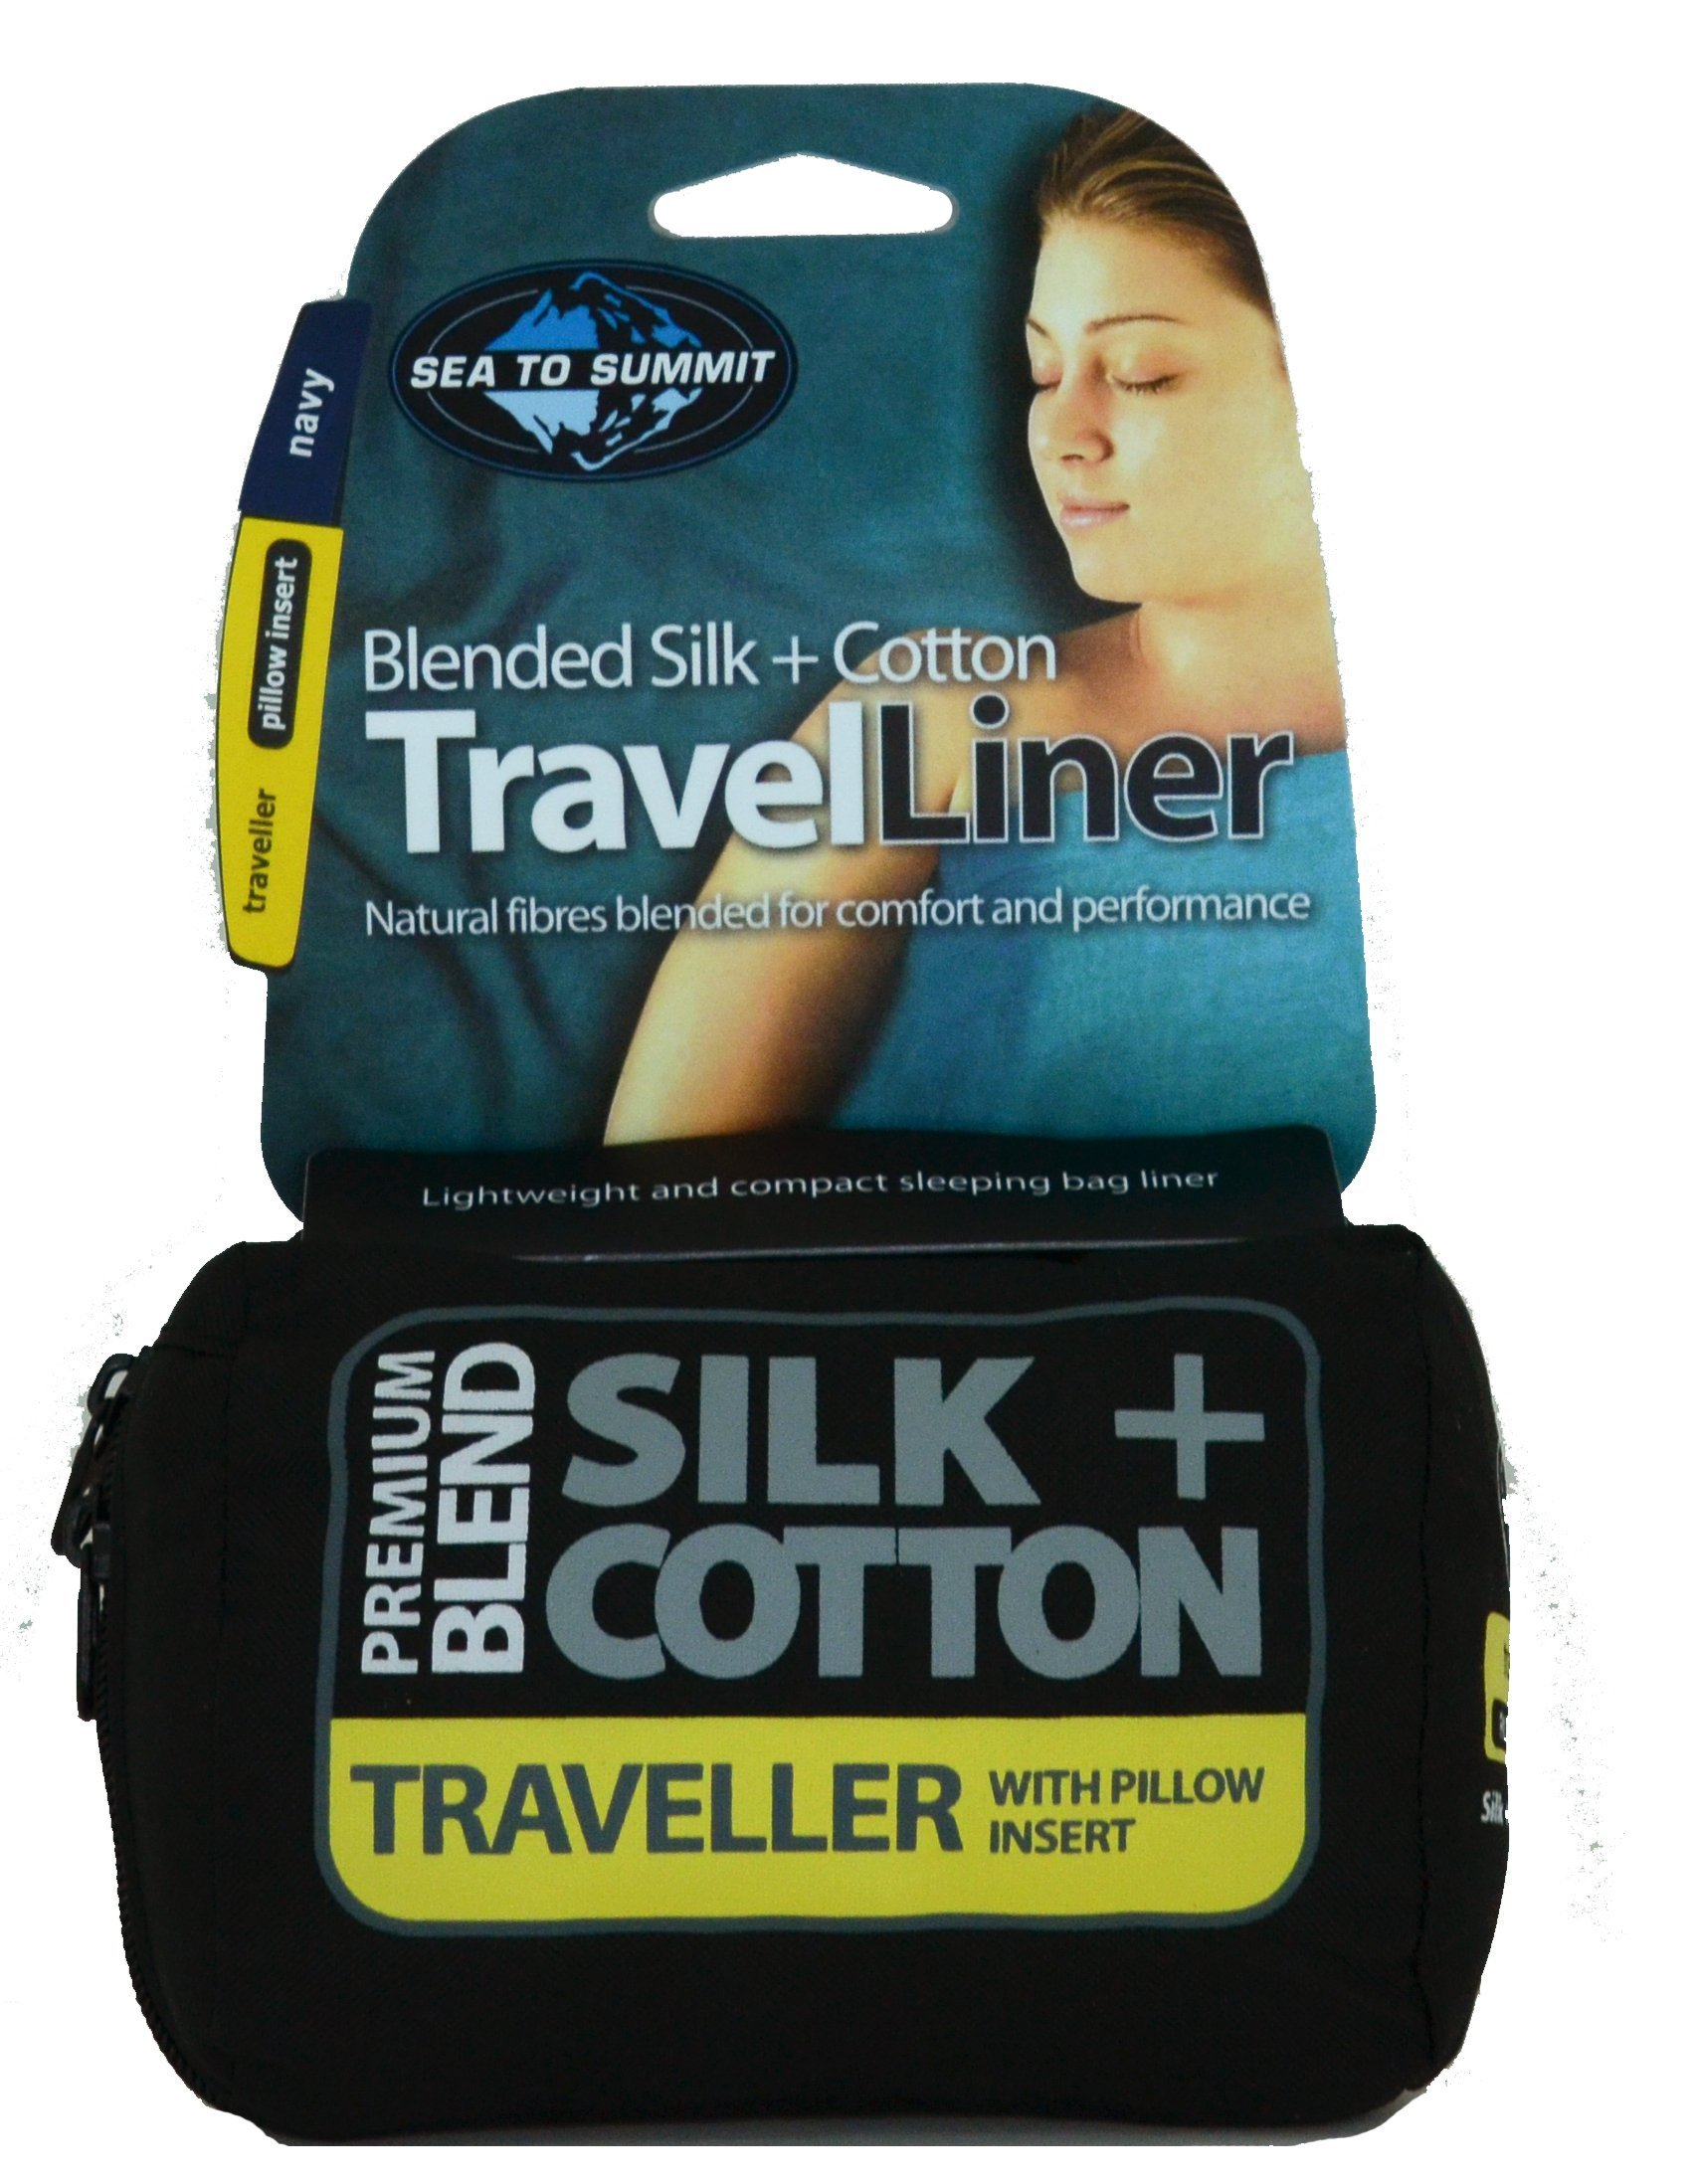 Sea to Summit Silk/Cotton Blend Travel Liner - Traveler with Pillow Inserts